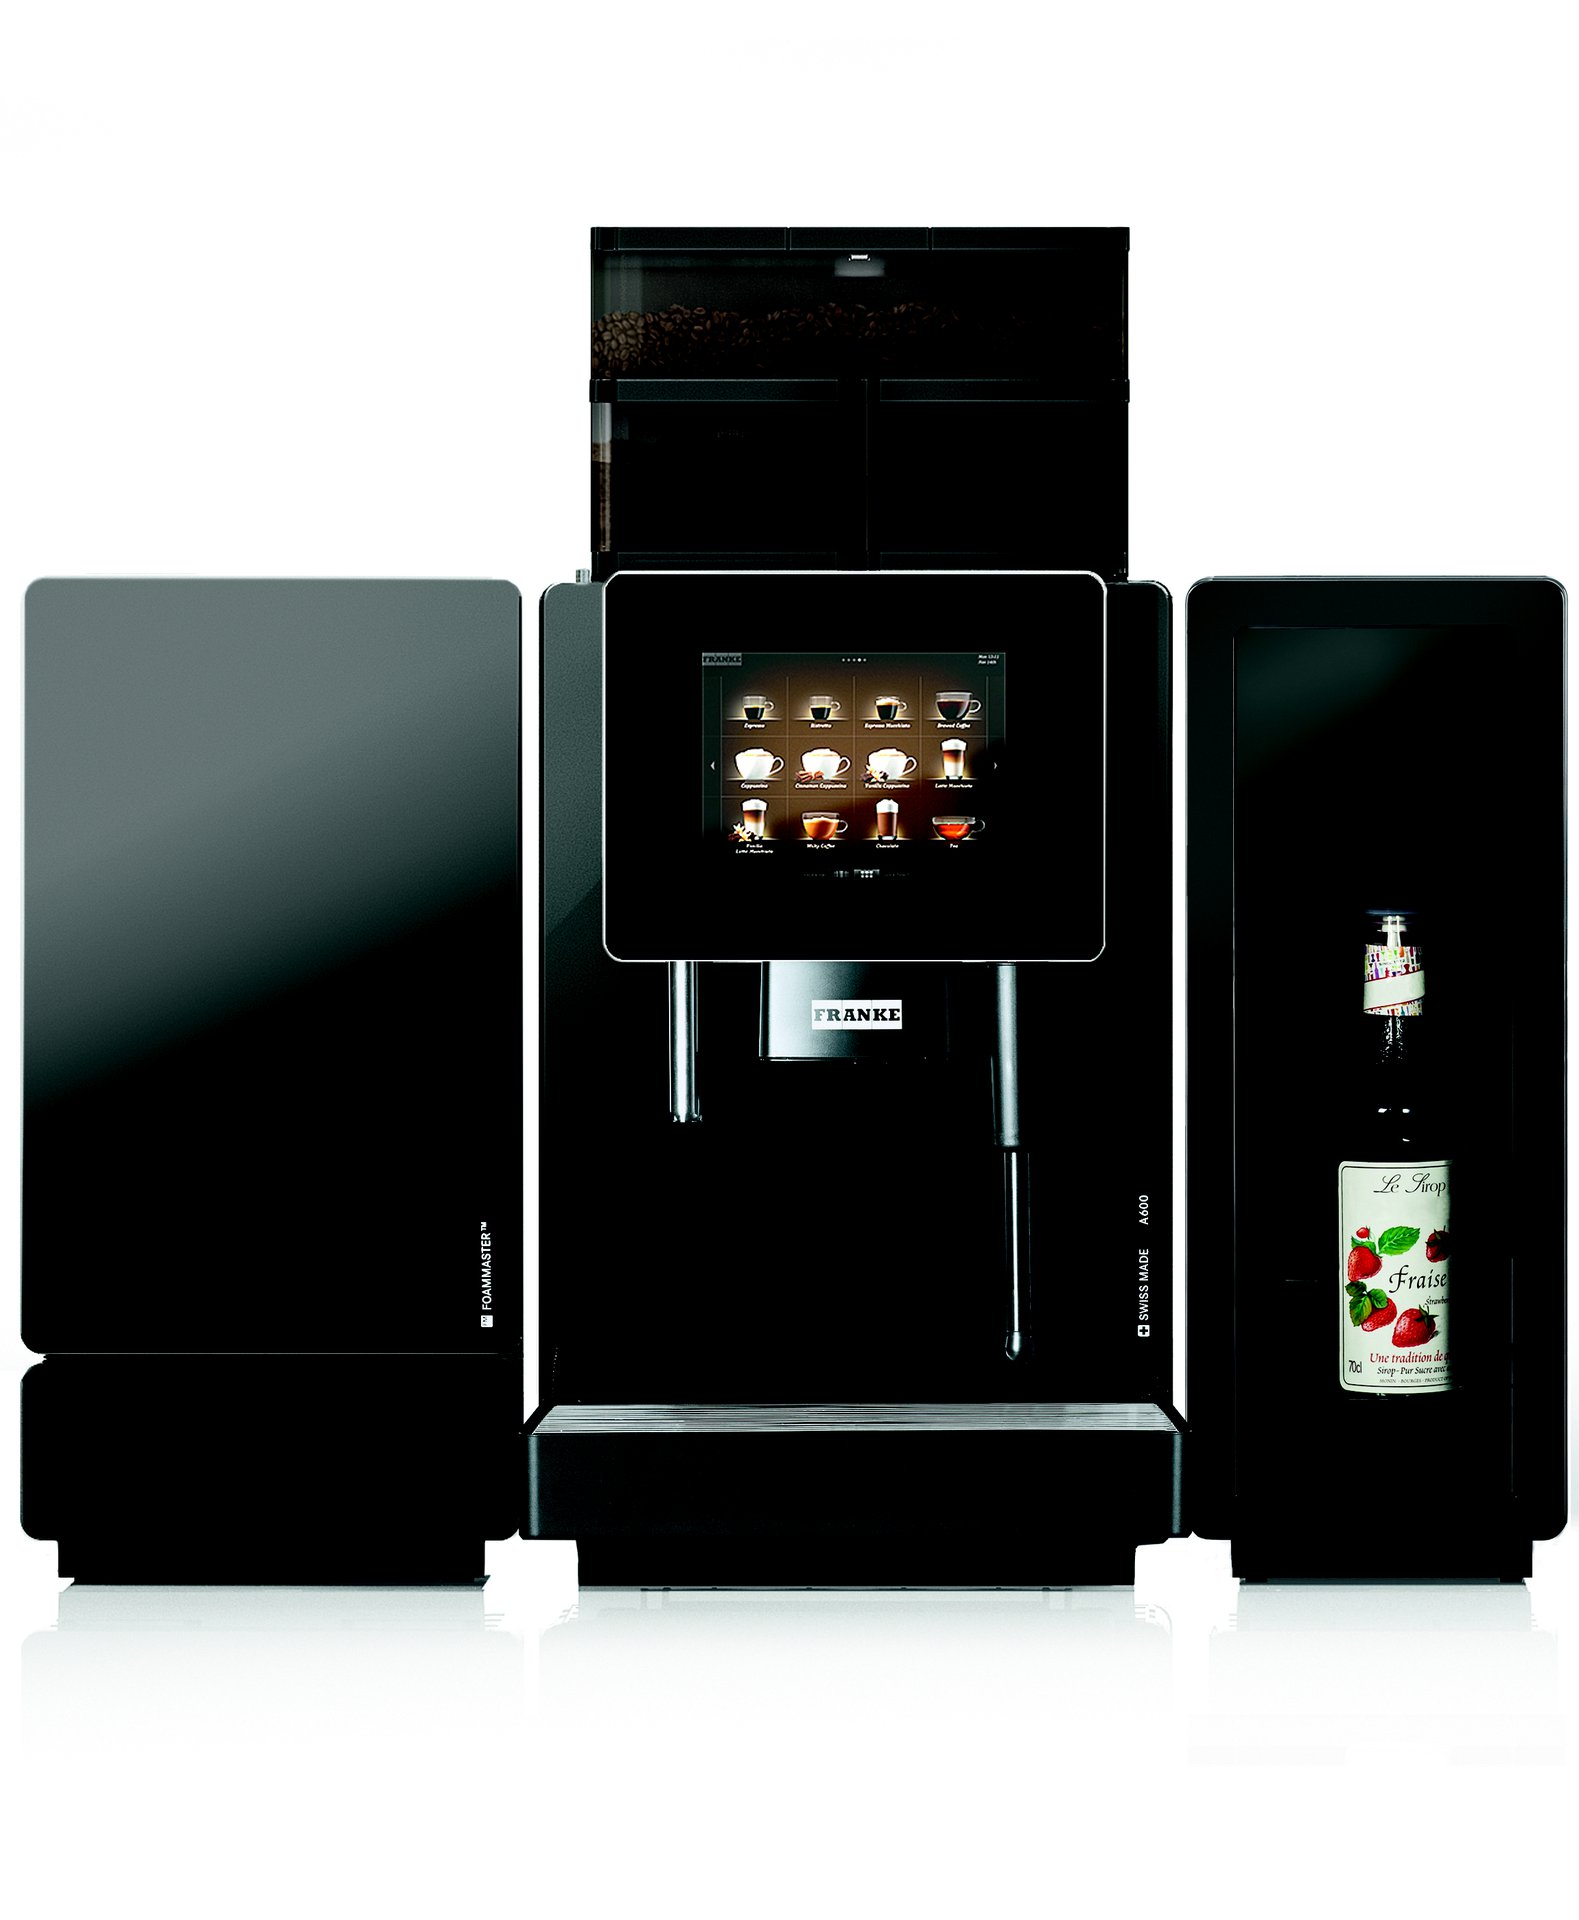 a600 franke coffee systems north america qsrweb. Black Bedroom Furniture Sets. Home Design Ideas